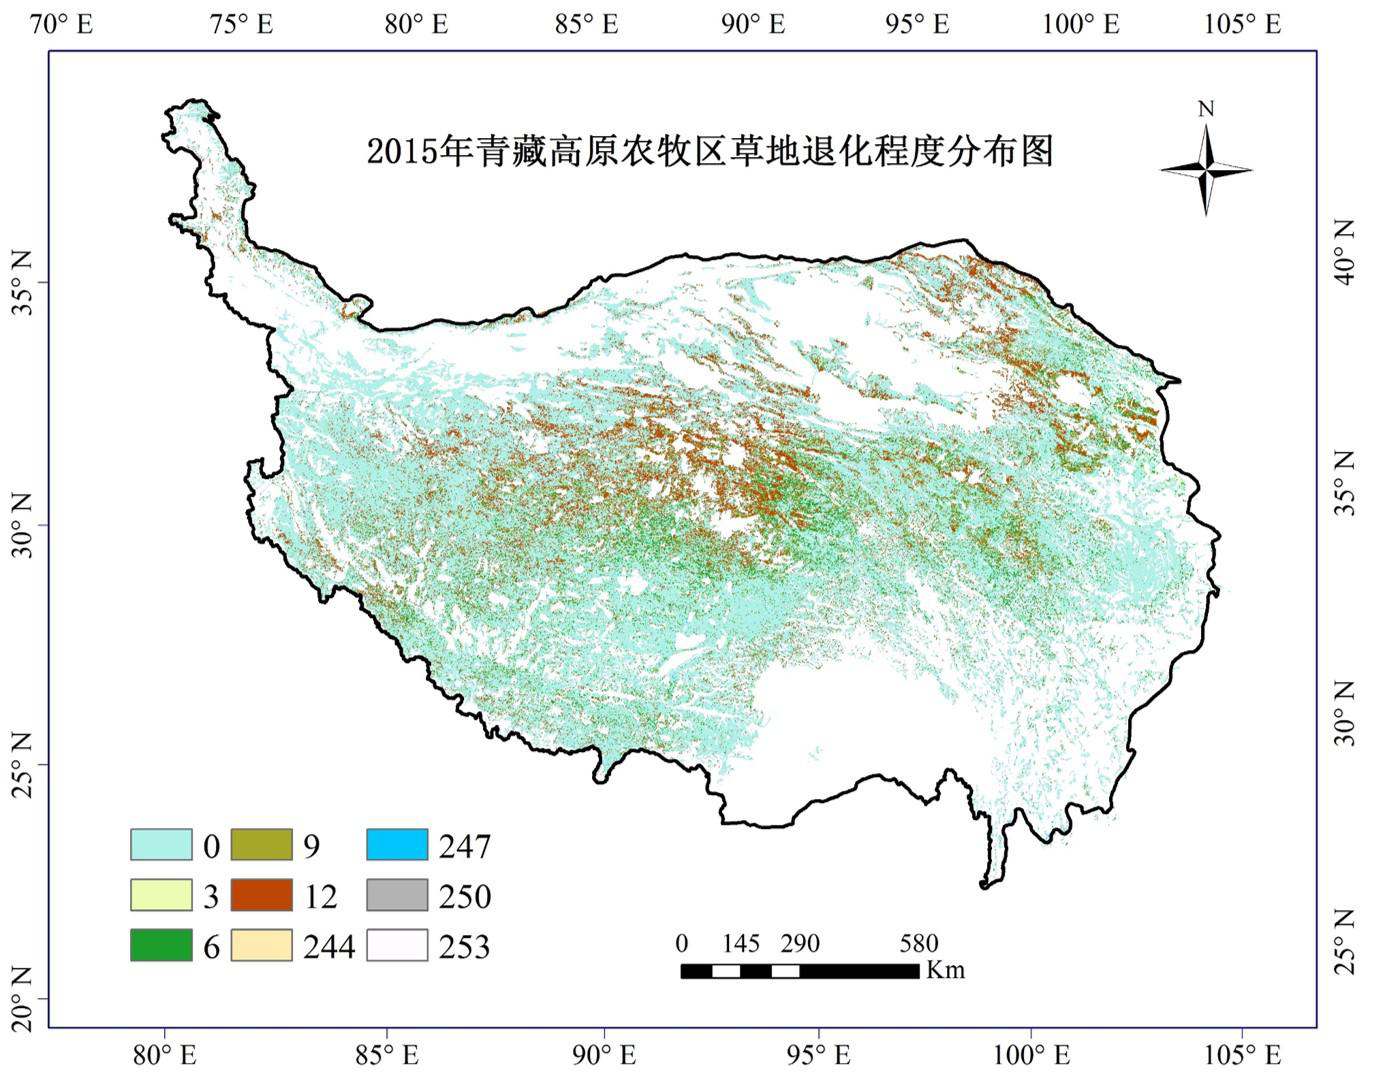 500 m grid data of grassland degradation assessment in agricultural and pastoral areas of the Qinghai-Tibet Plateau in 2015